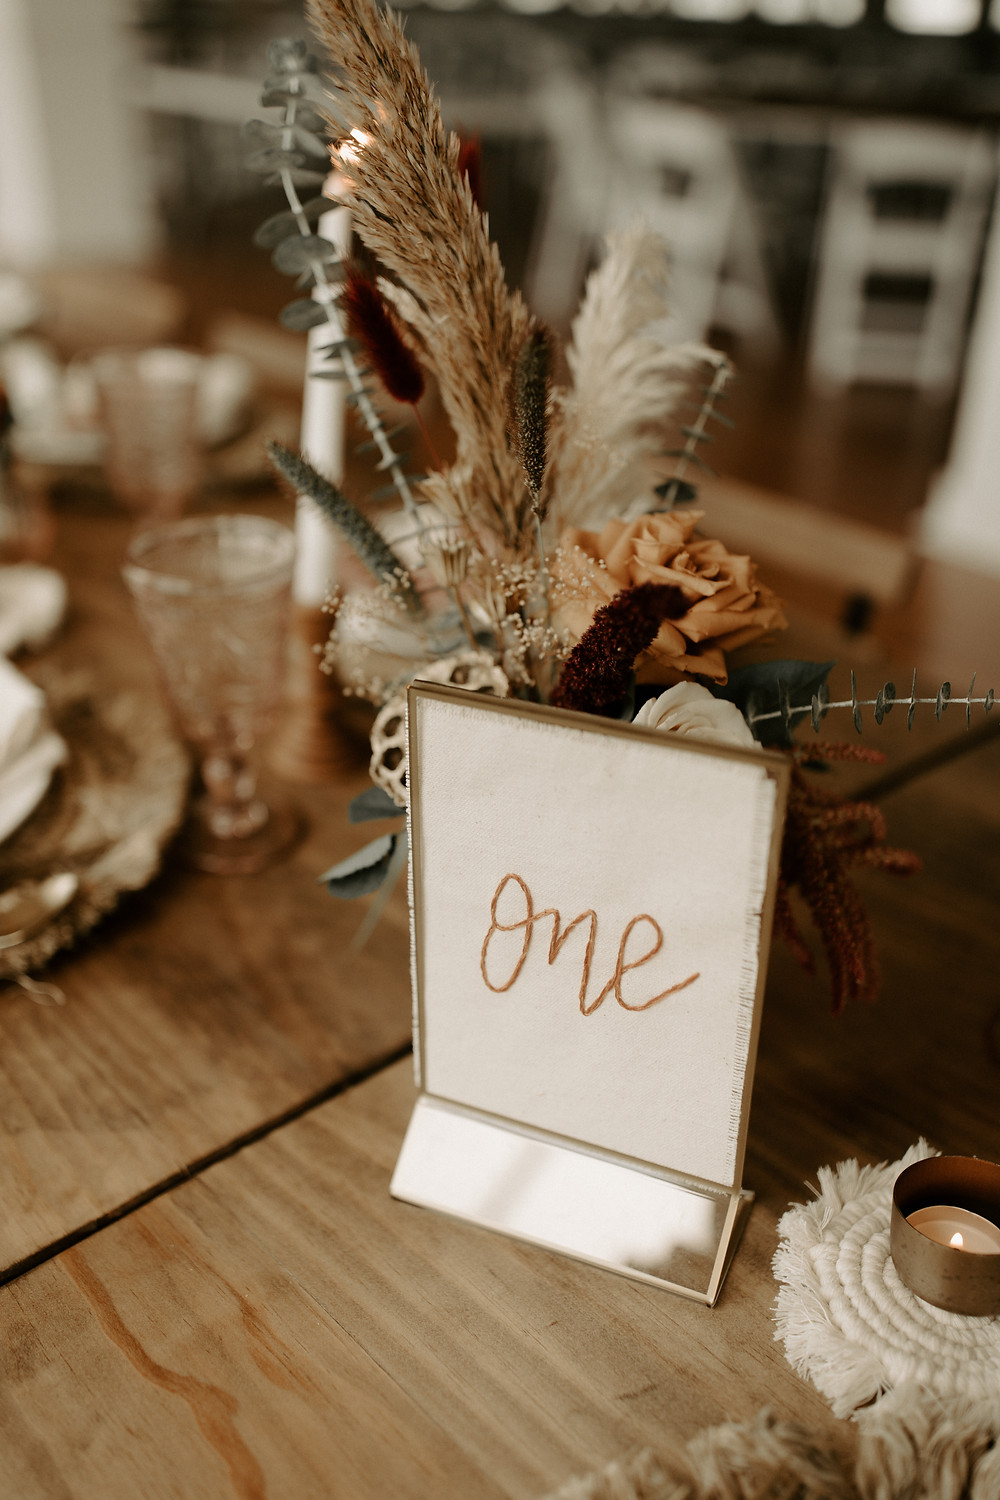 Embroidered wedding table number design